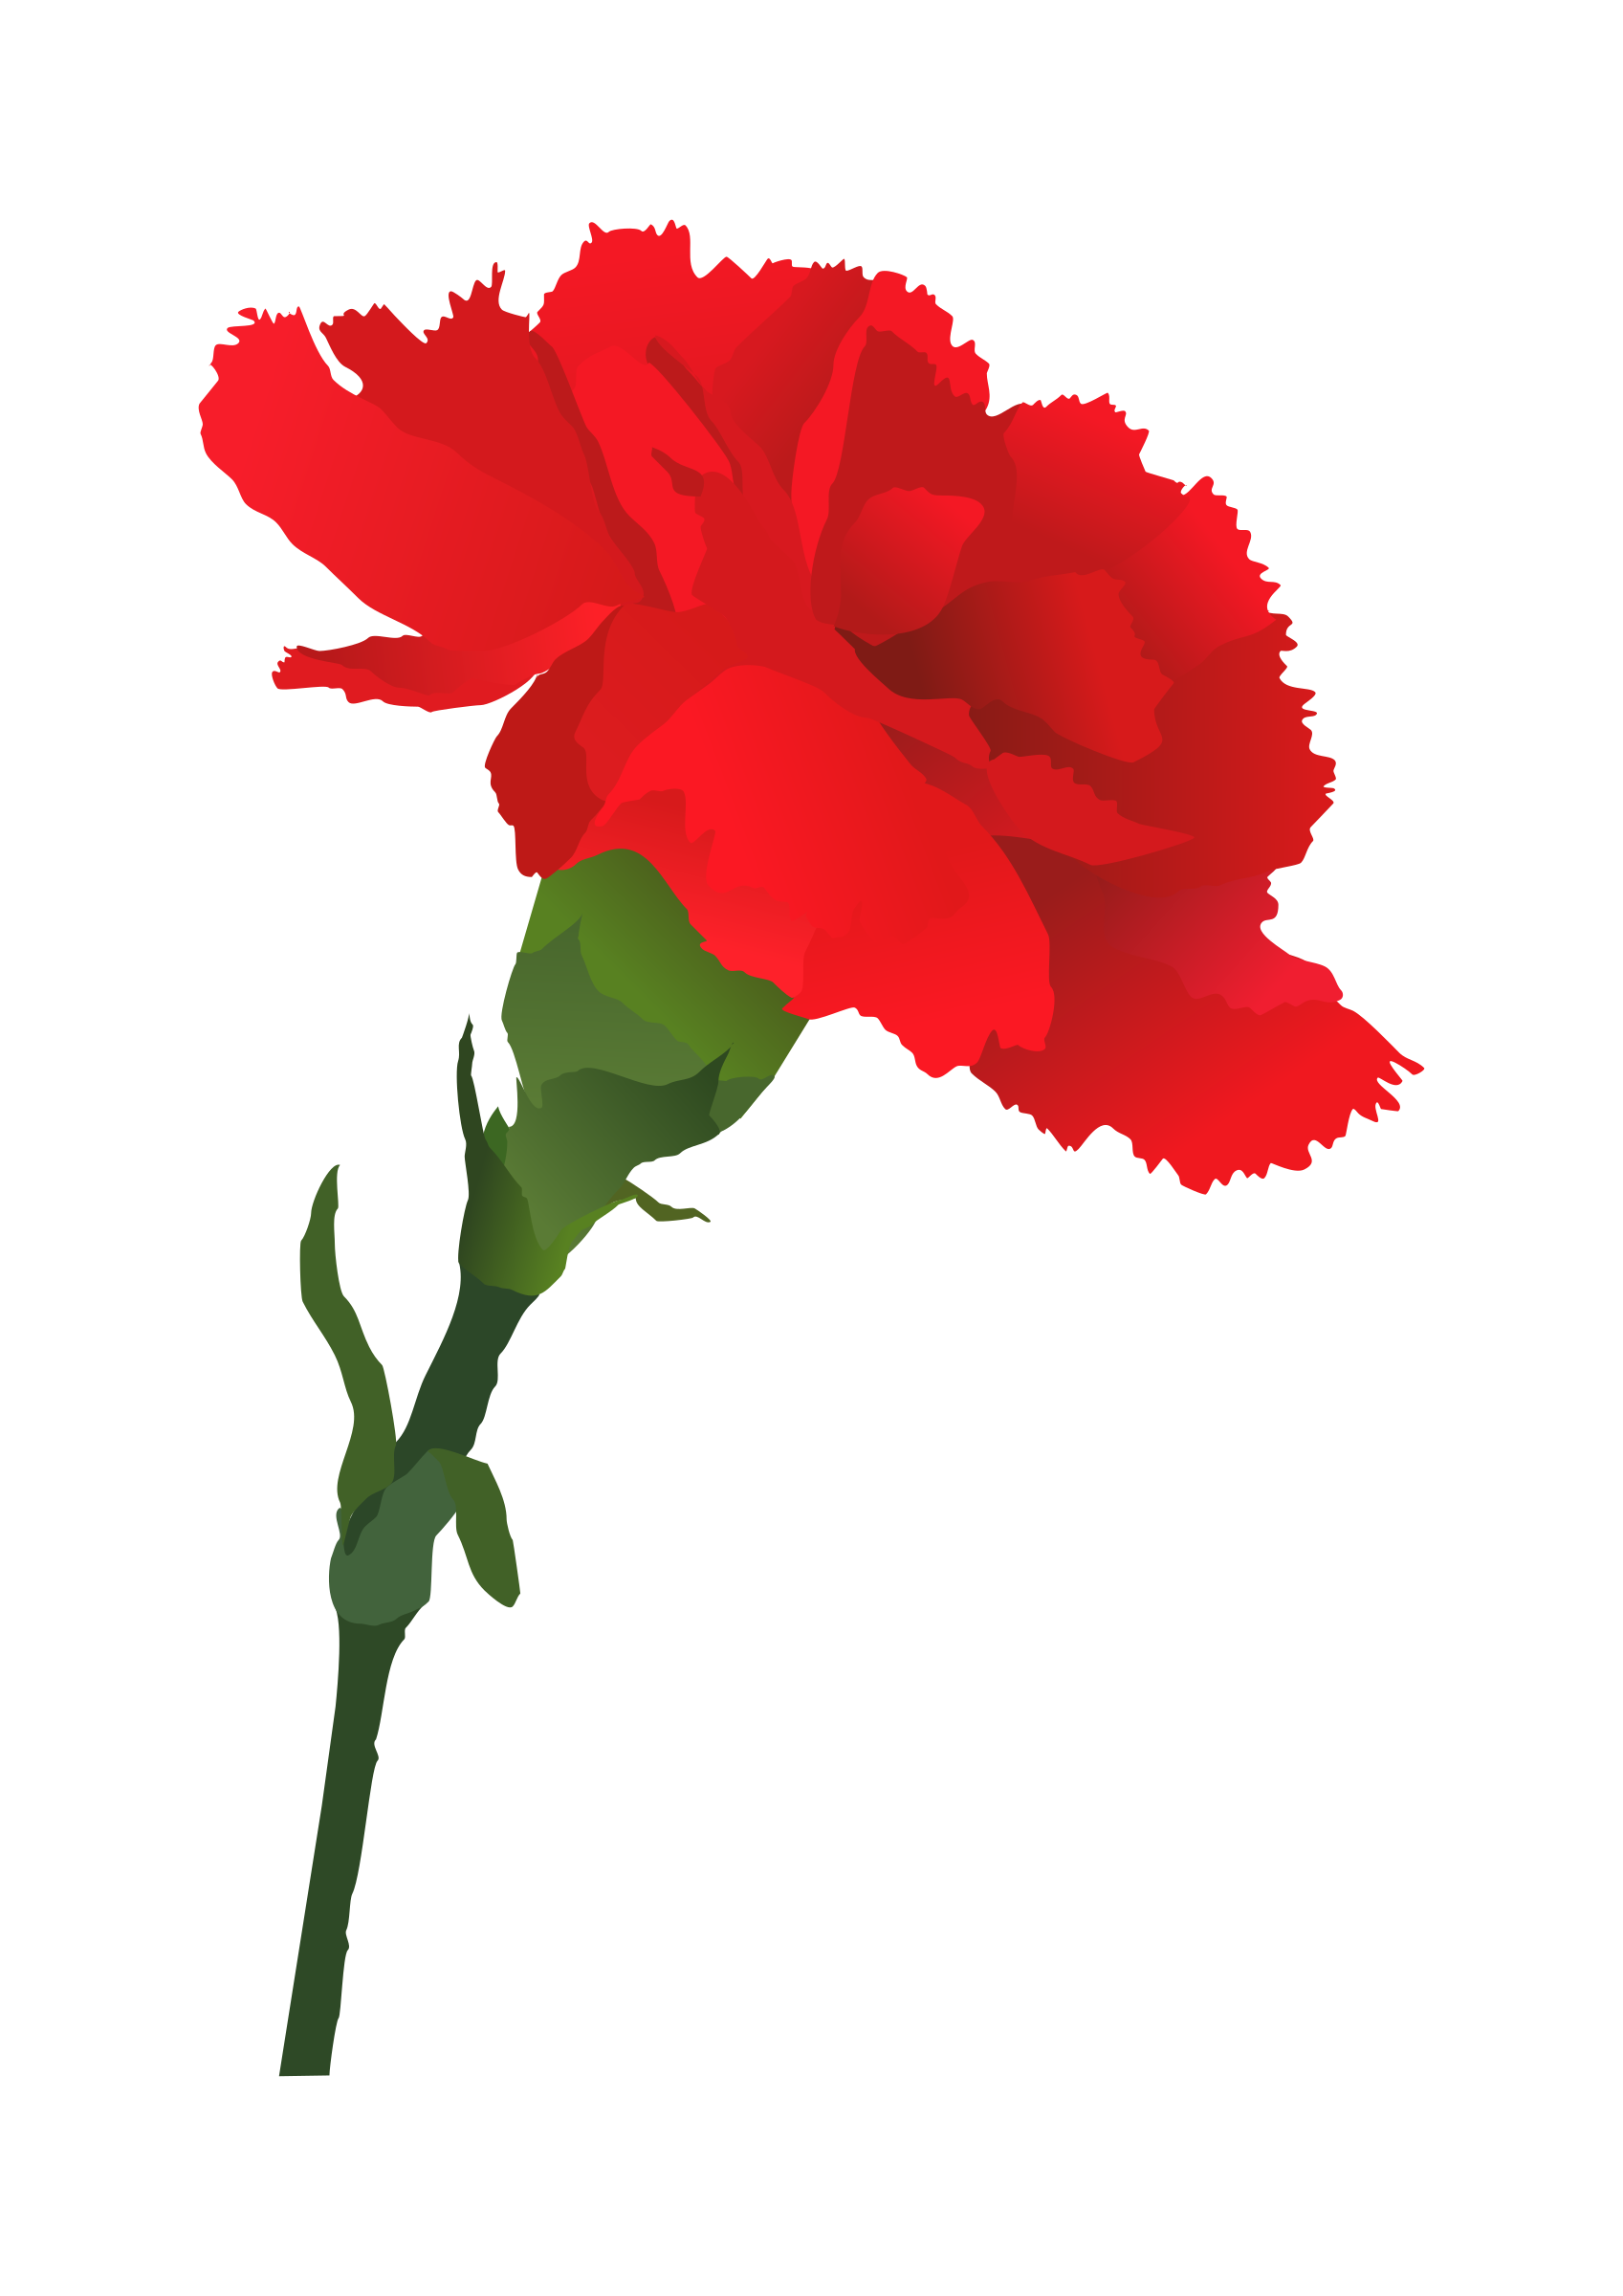 Coffin clipart flower drawing. Red carnation displaying images